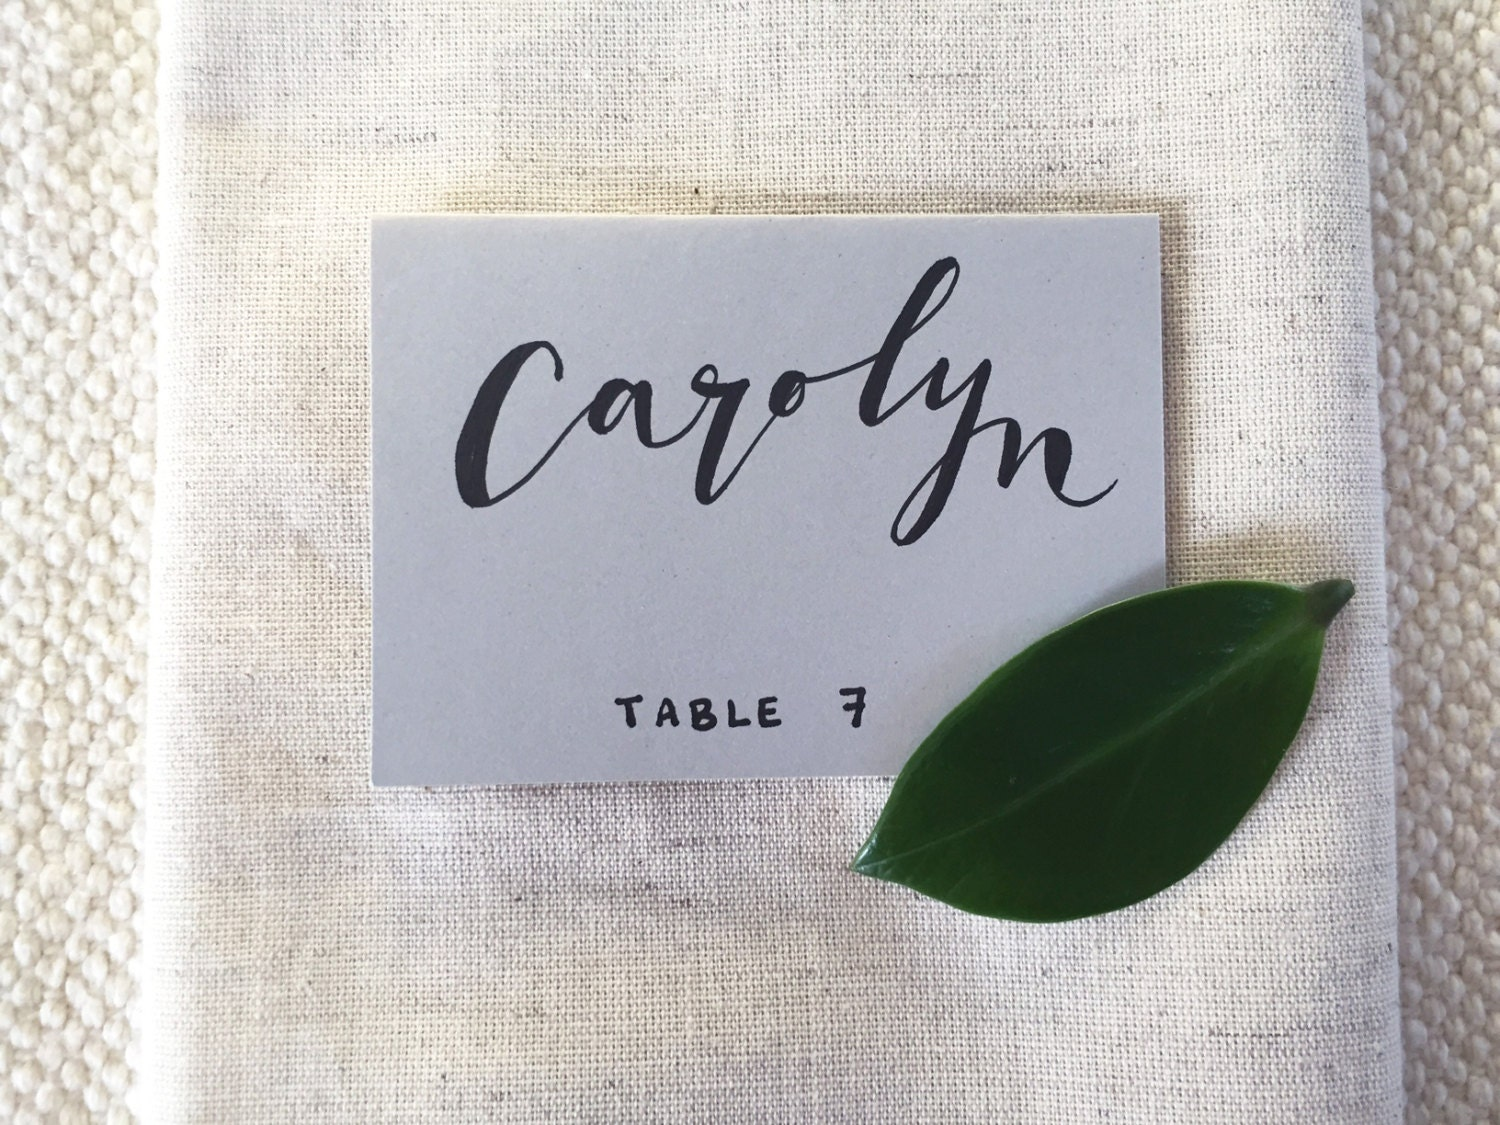 handwritten calligraphy wedding place cards escort cards for dinner party anniversary or shower